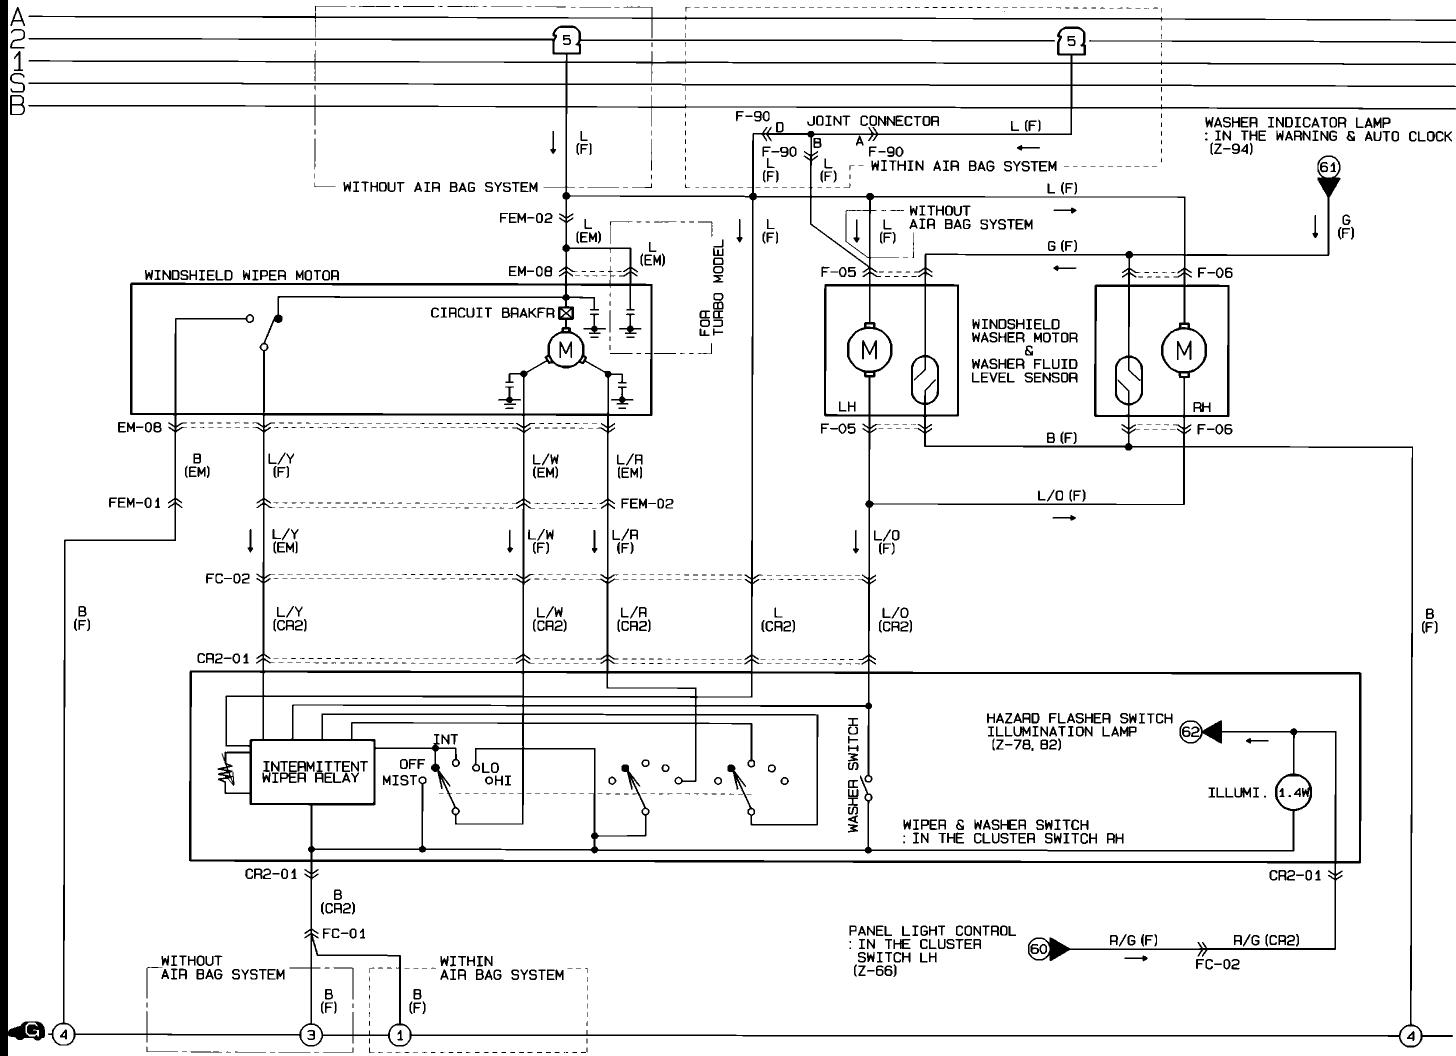 Awesome Bohn Evaporator Wiring Diagram Fans Pictures - Electrical ...